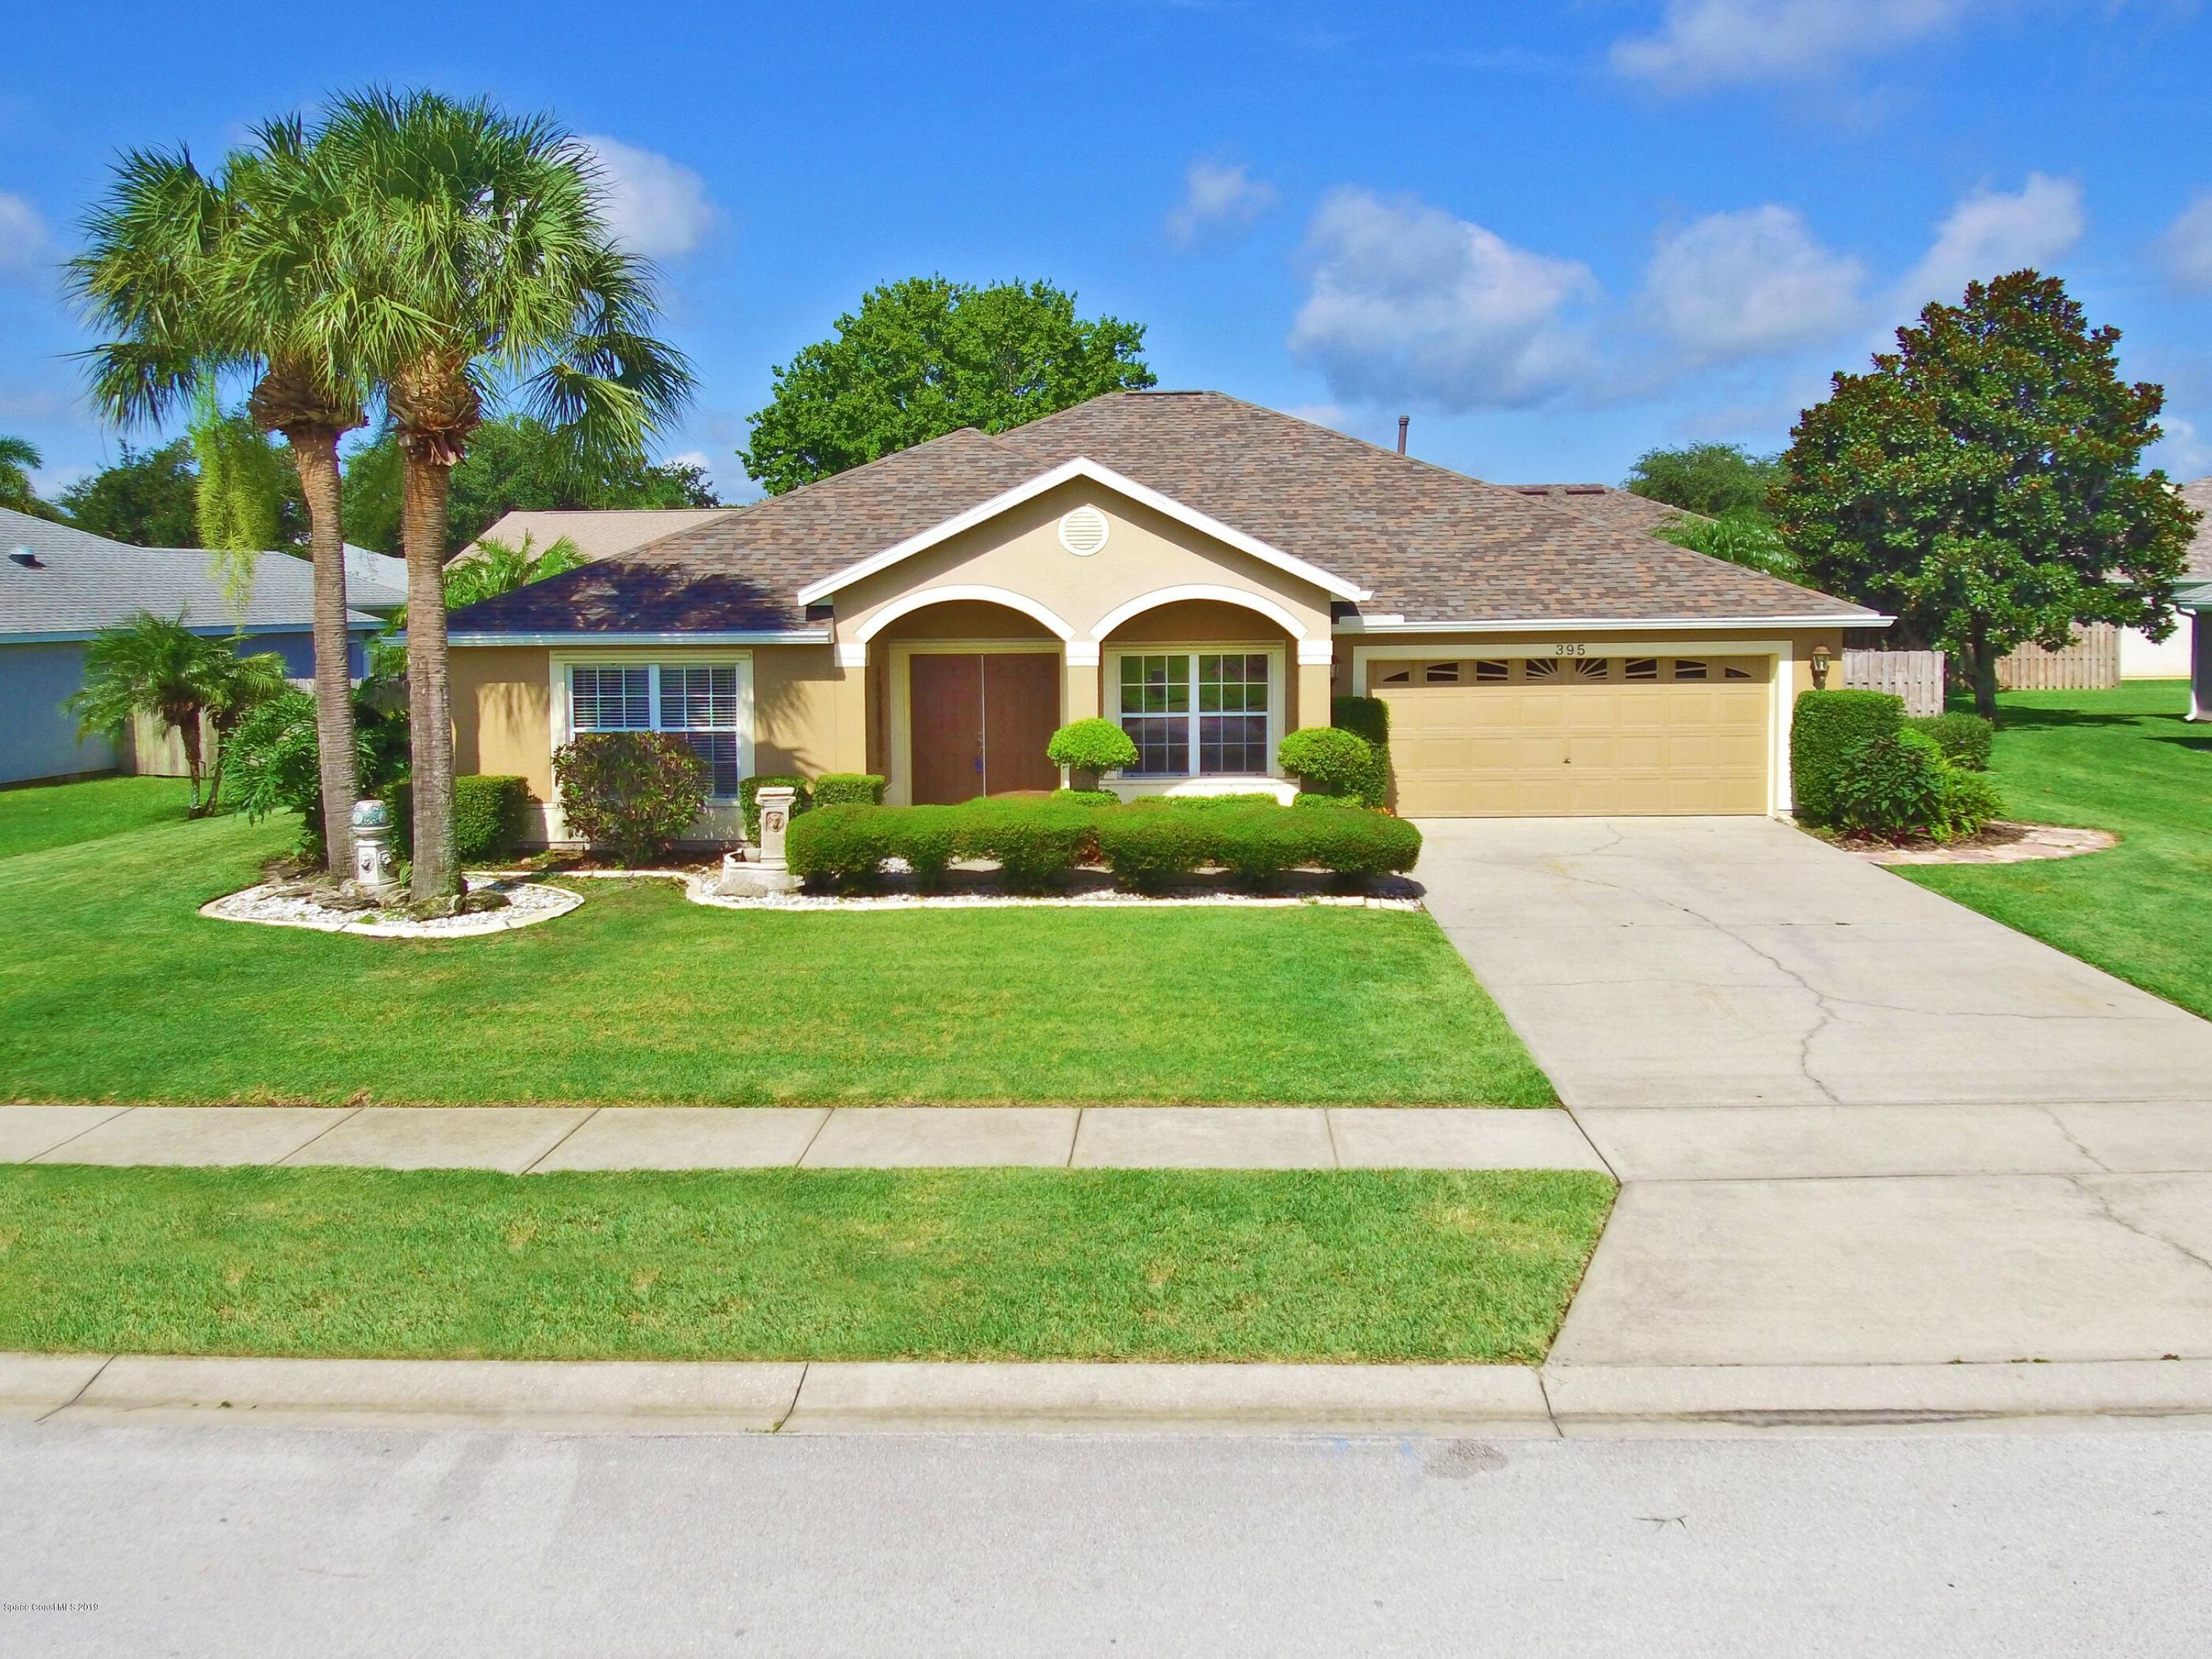 395 Brookcrest Circle, Rockledge, Florida